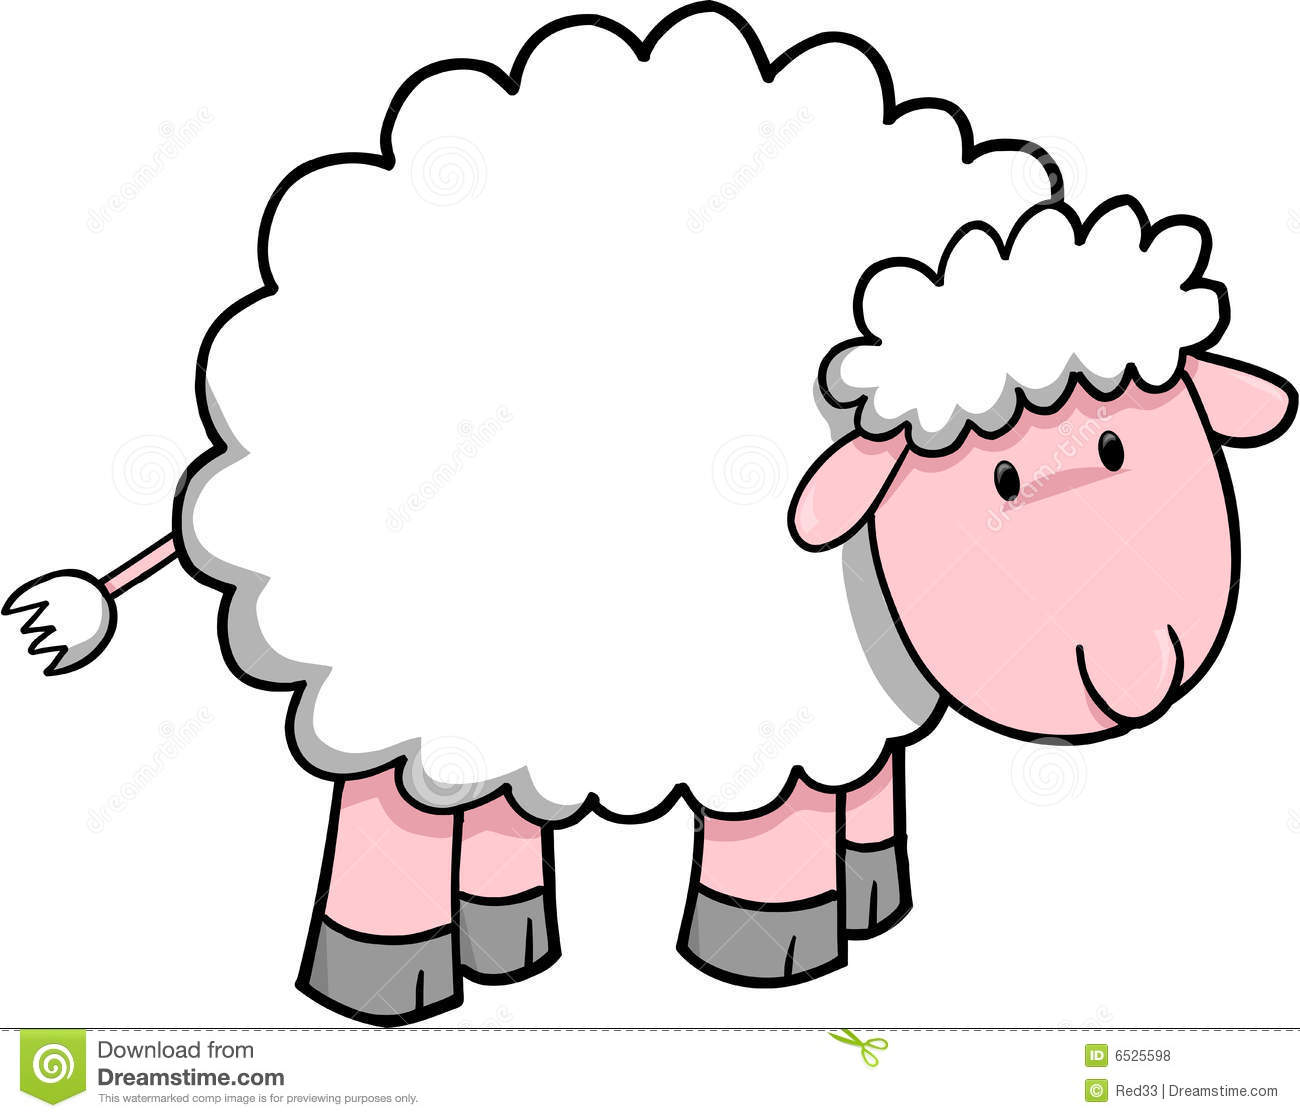 Clip Art Sheep Clipart baby sheep clipart kid fun timewebsite clipart